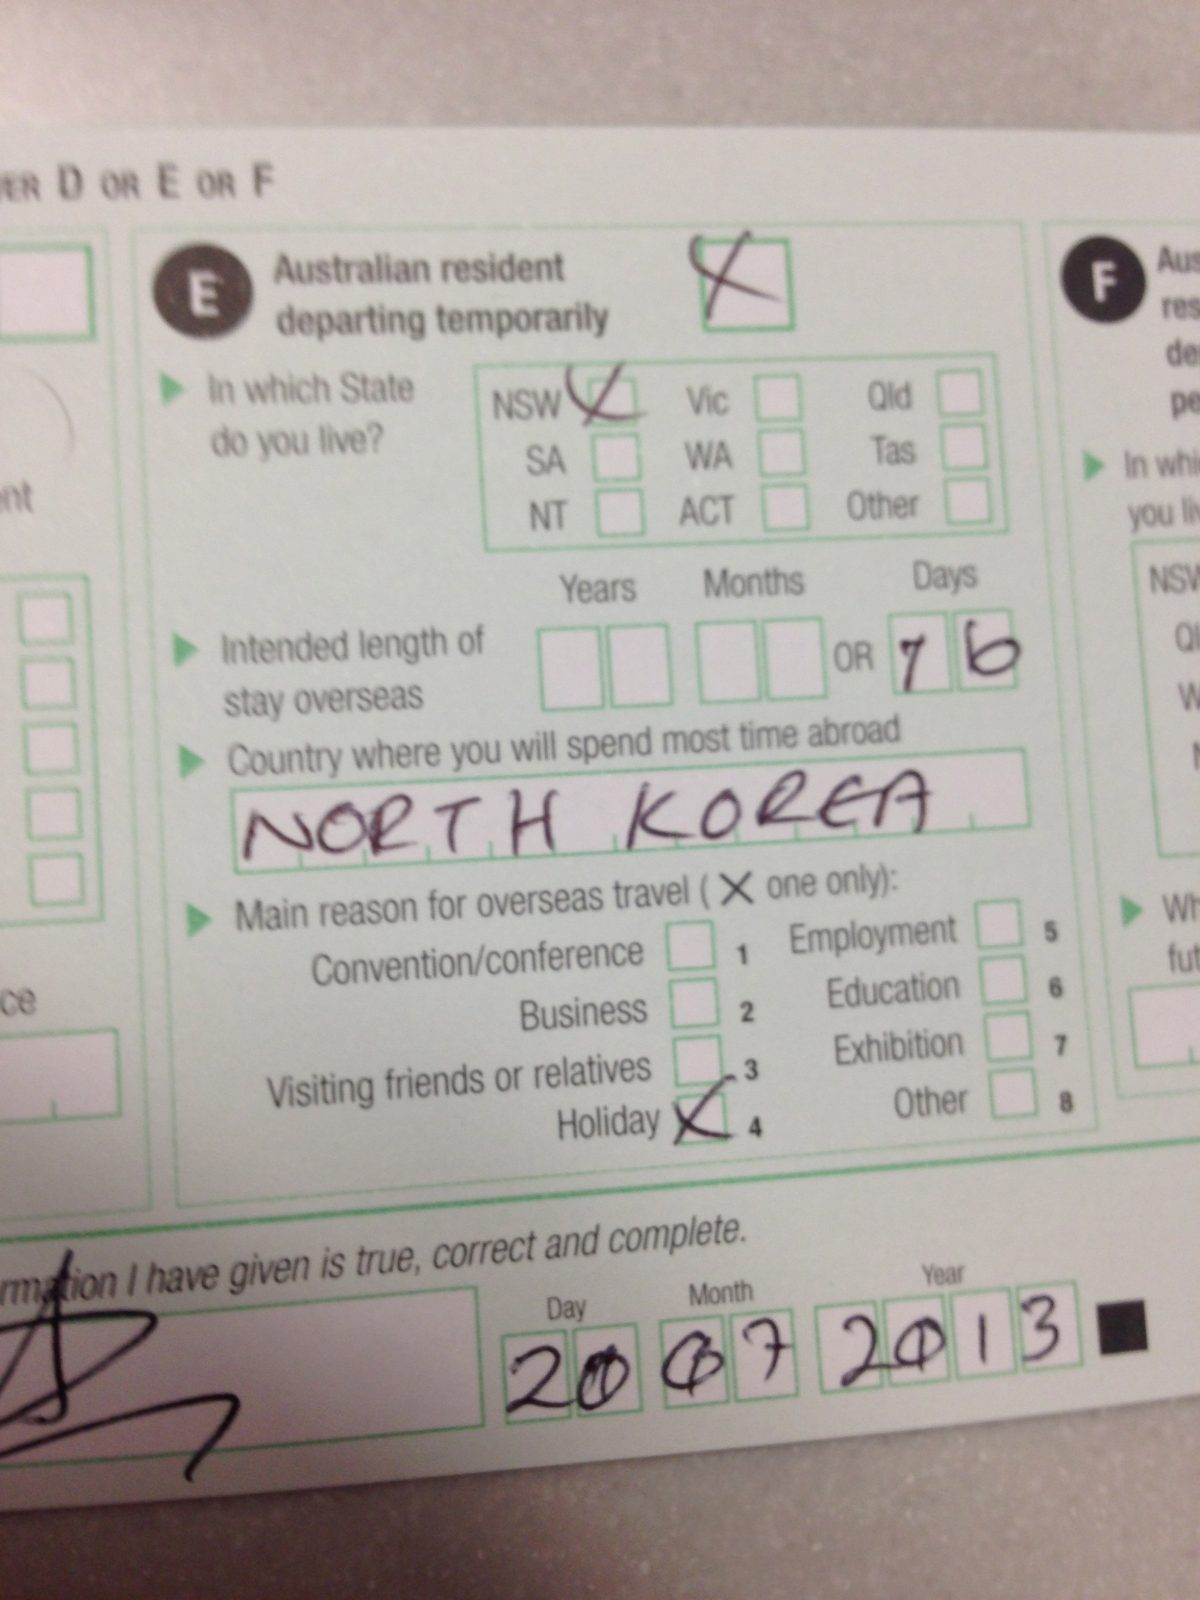 Australian customs card, declares North Korea as my main location for this trip.